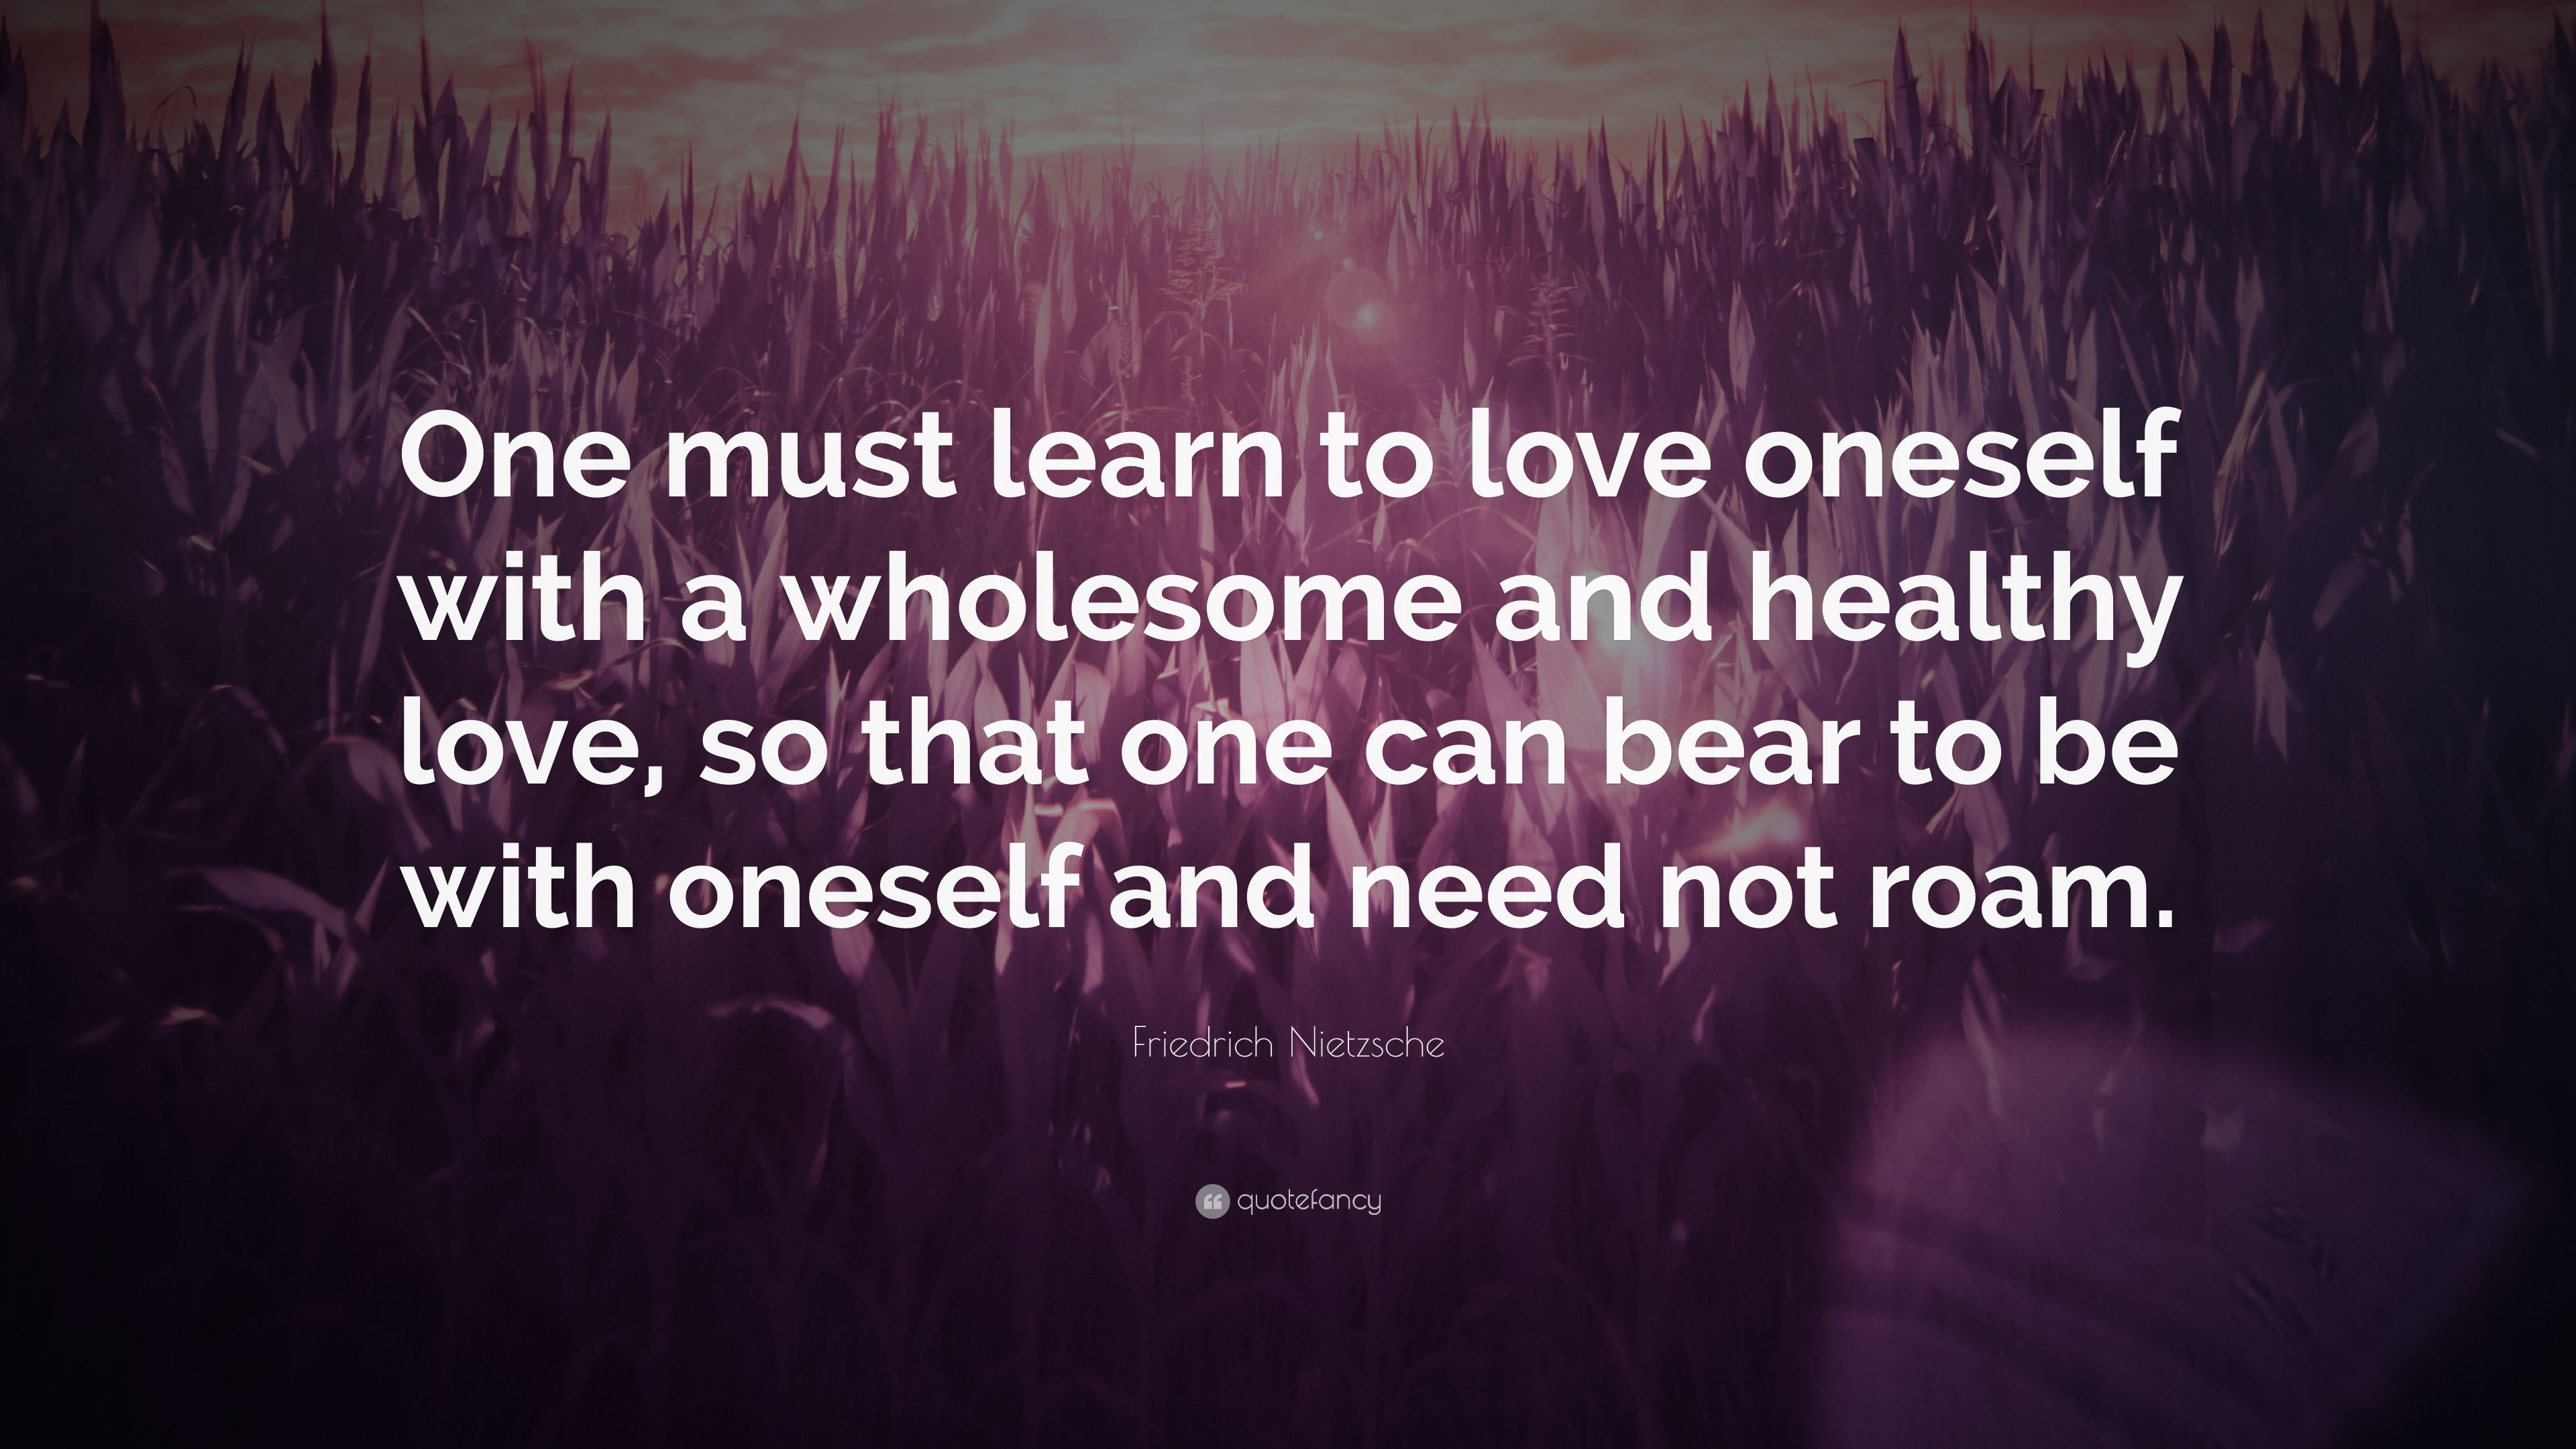 "Friedrich Nietzsche Quote "" e must learn to love oneself with a wholesome and healthy"